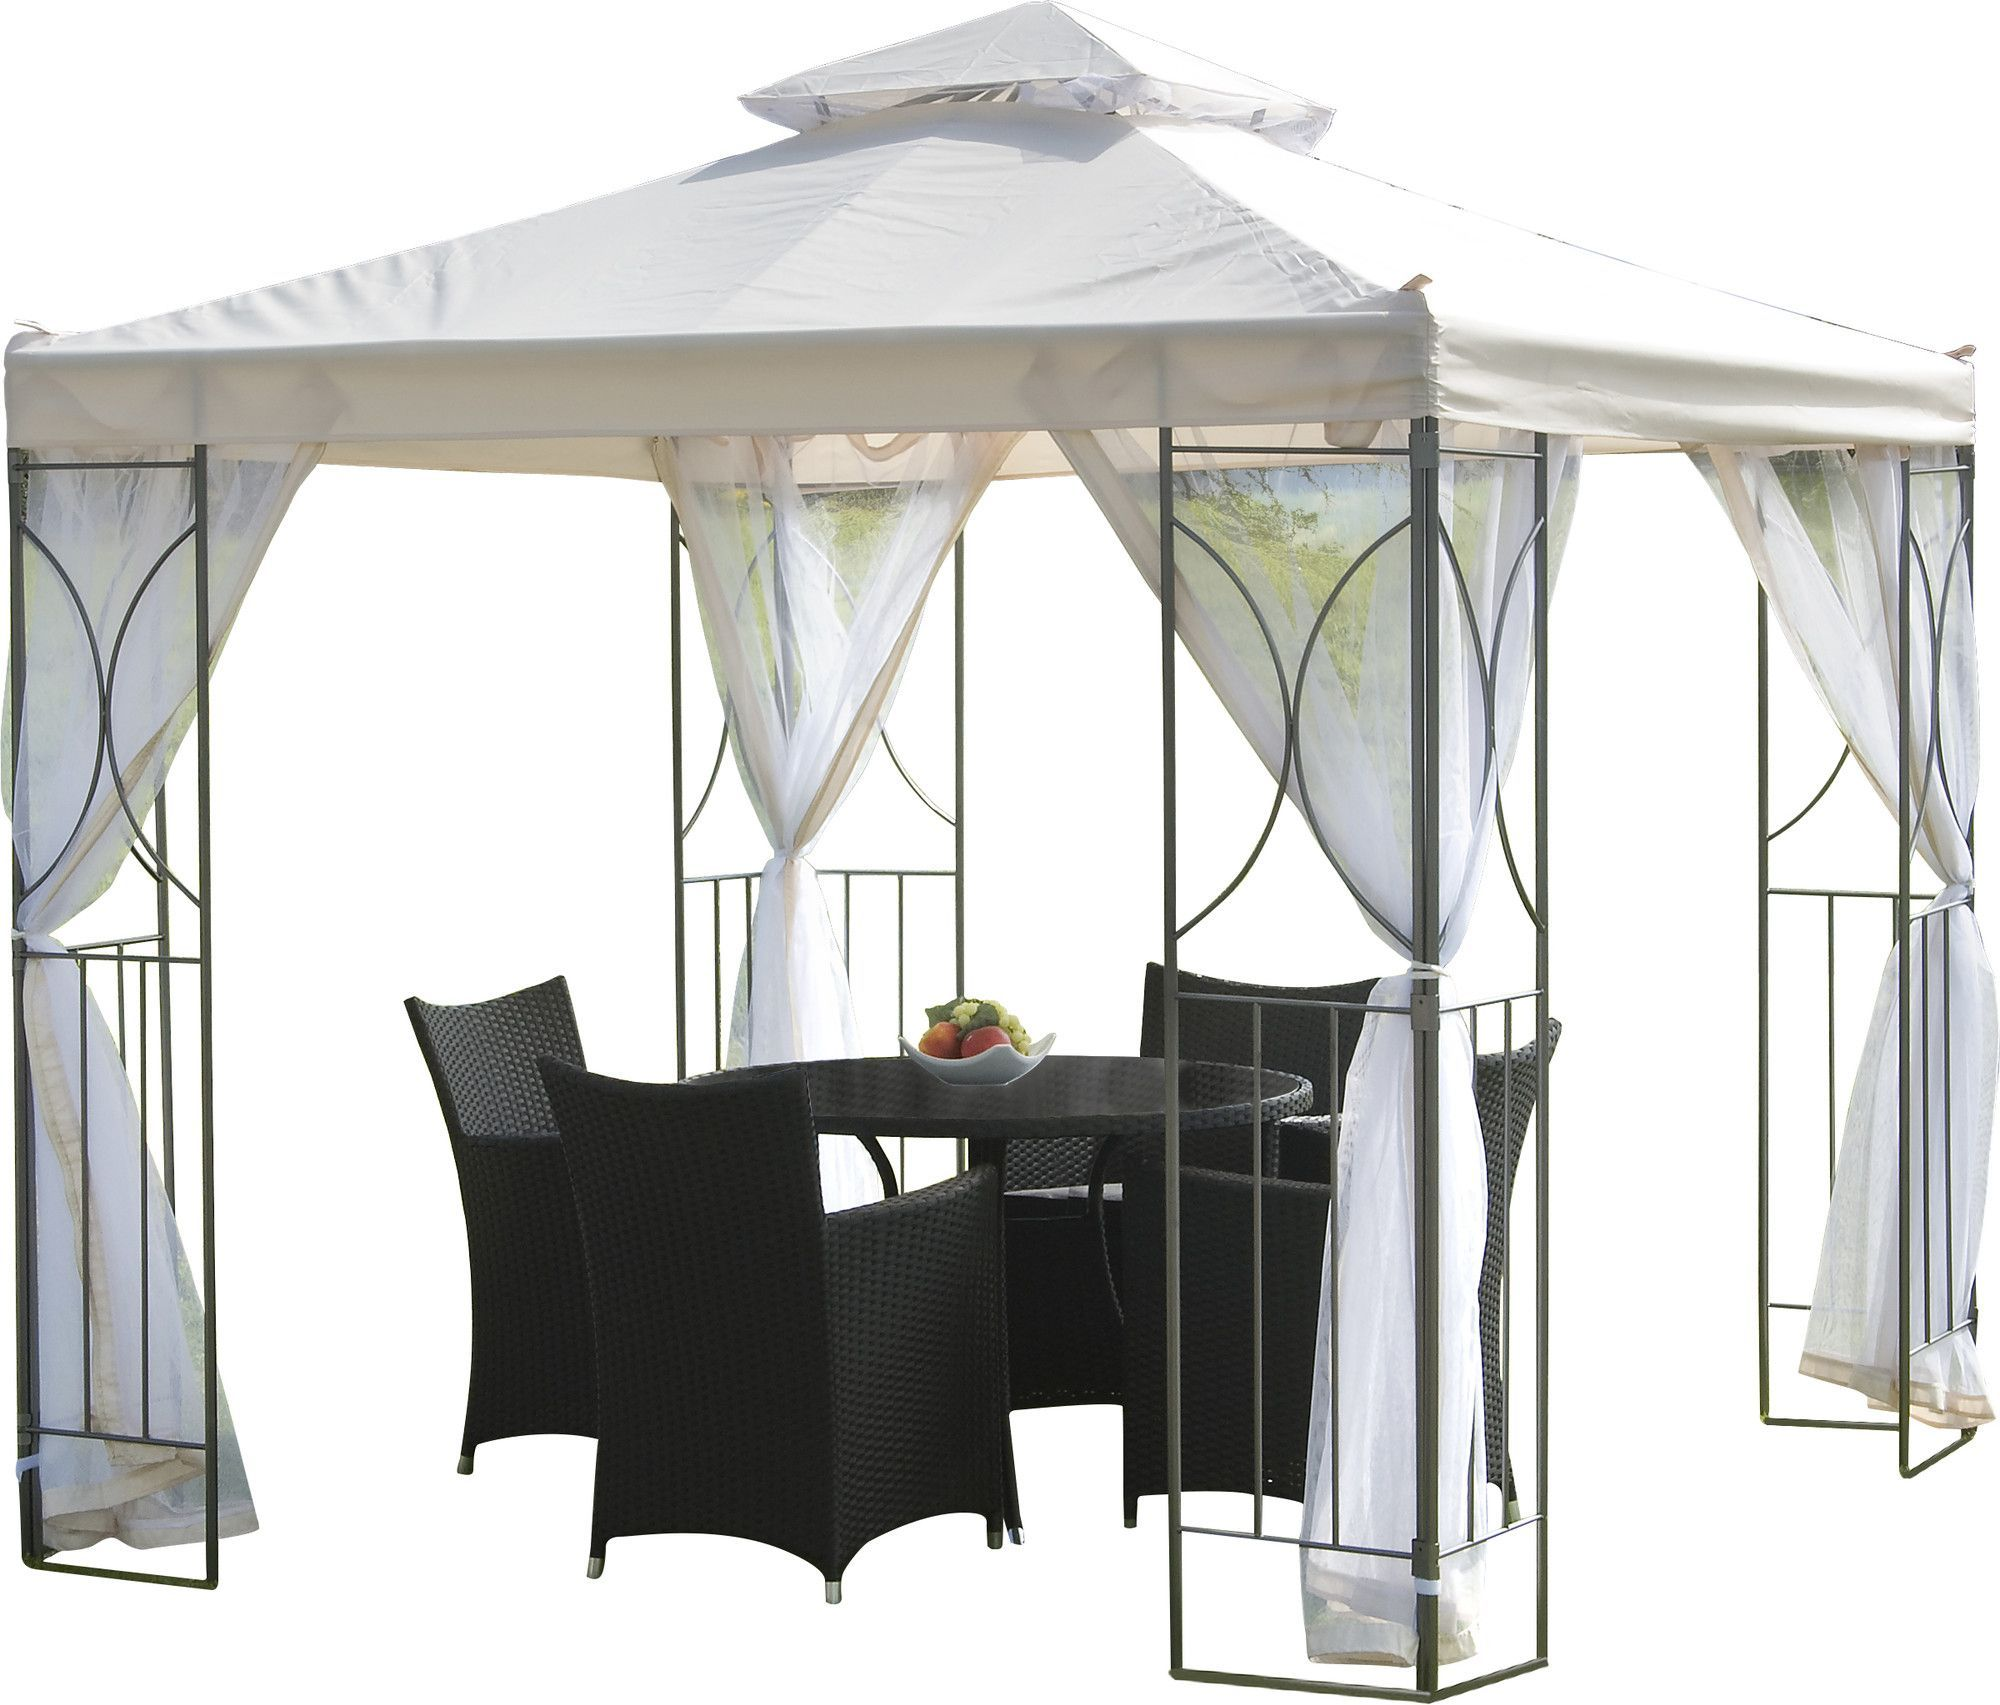 Polenza 8 Ft W x 8 Ft D Steel Permanent Gazebo